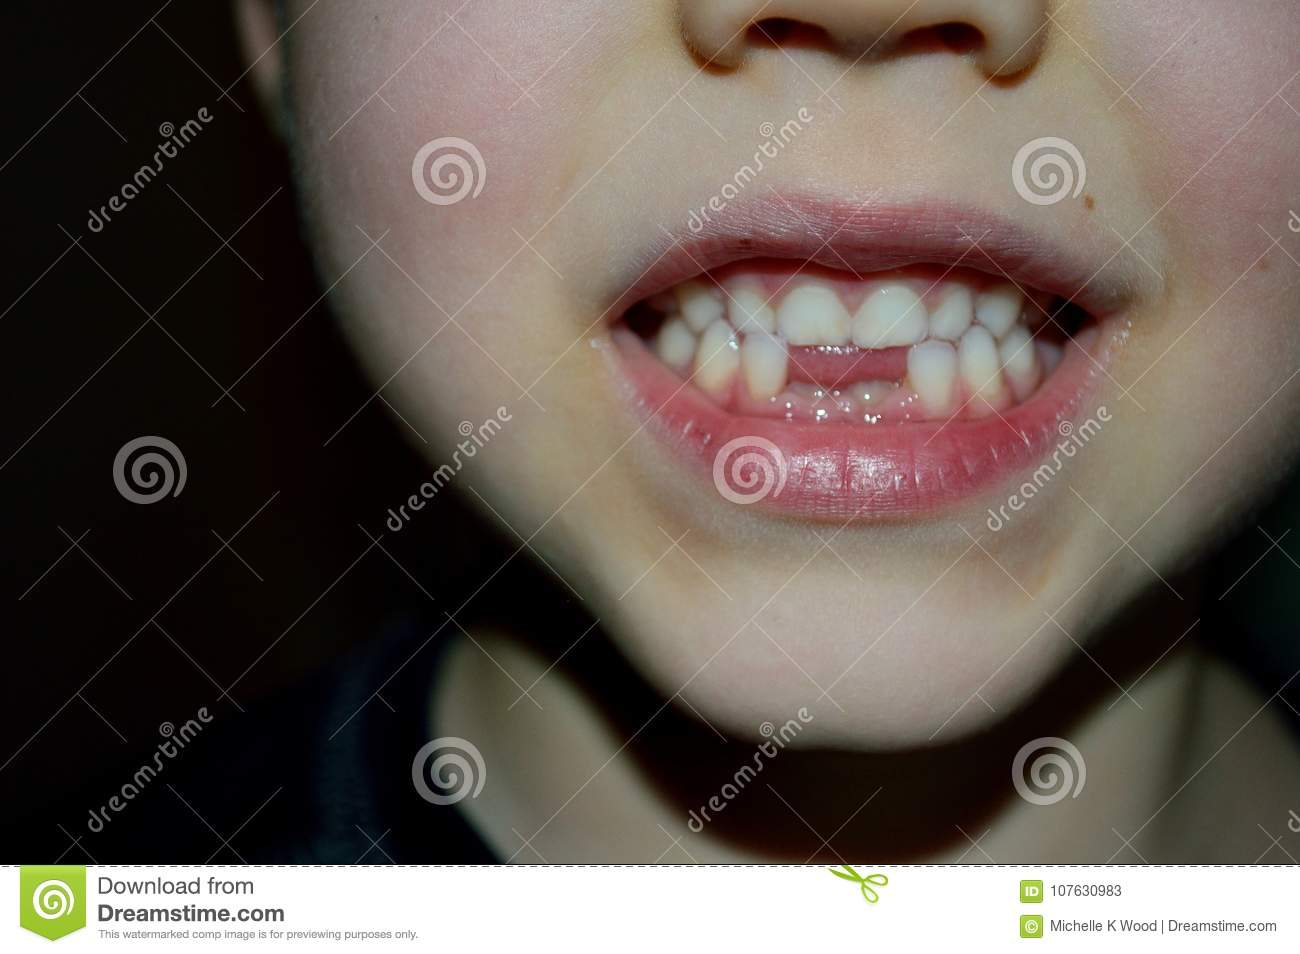 Boy showing off two new teeth